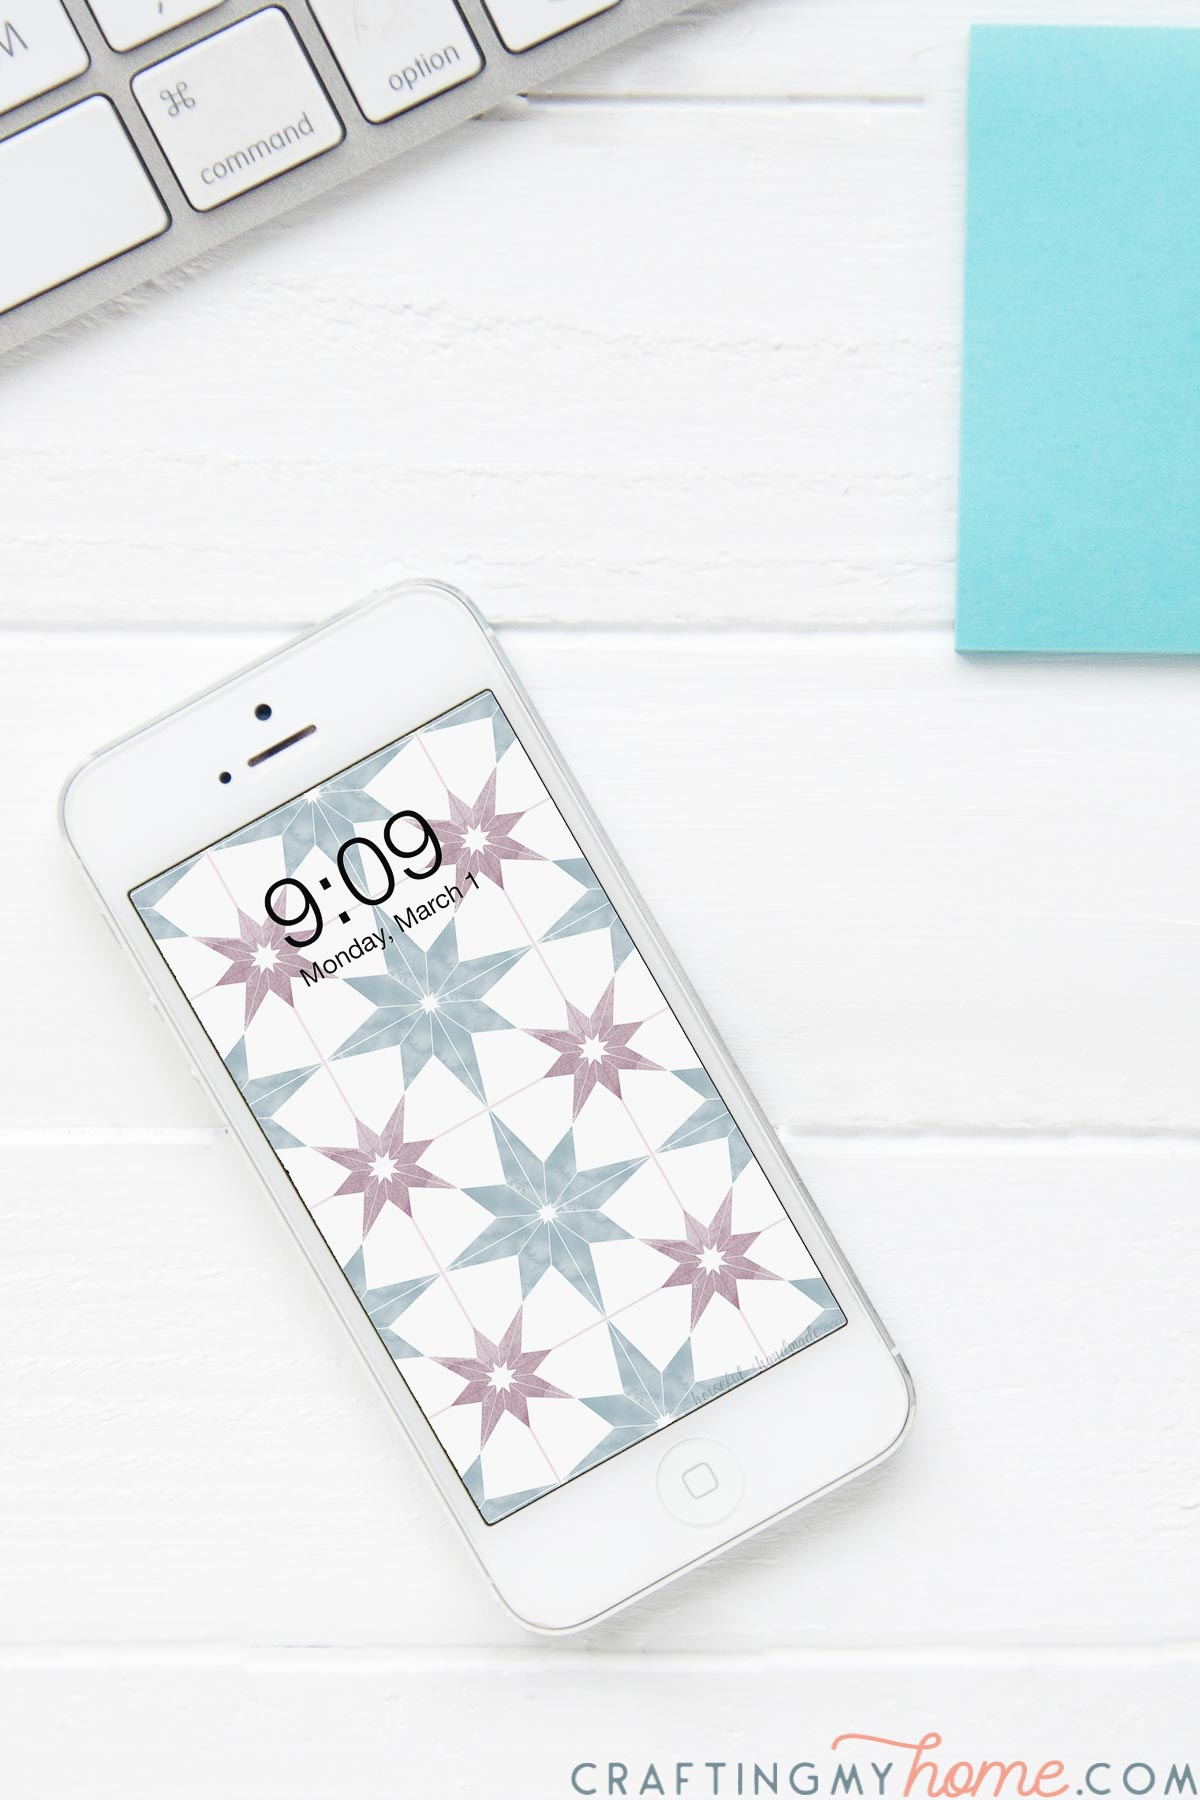 Smartphone on a desk with the patterned tile digital wallpaper on the home screen.